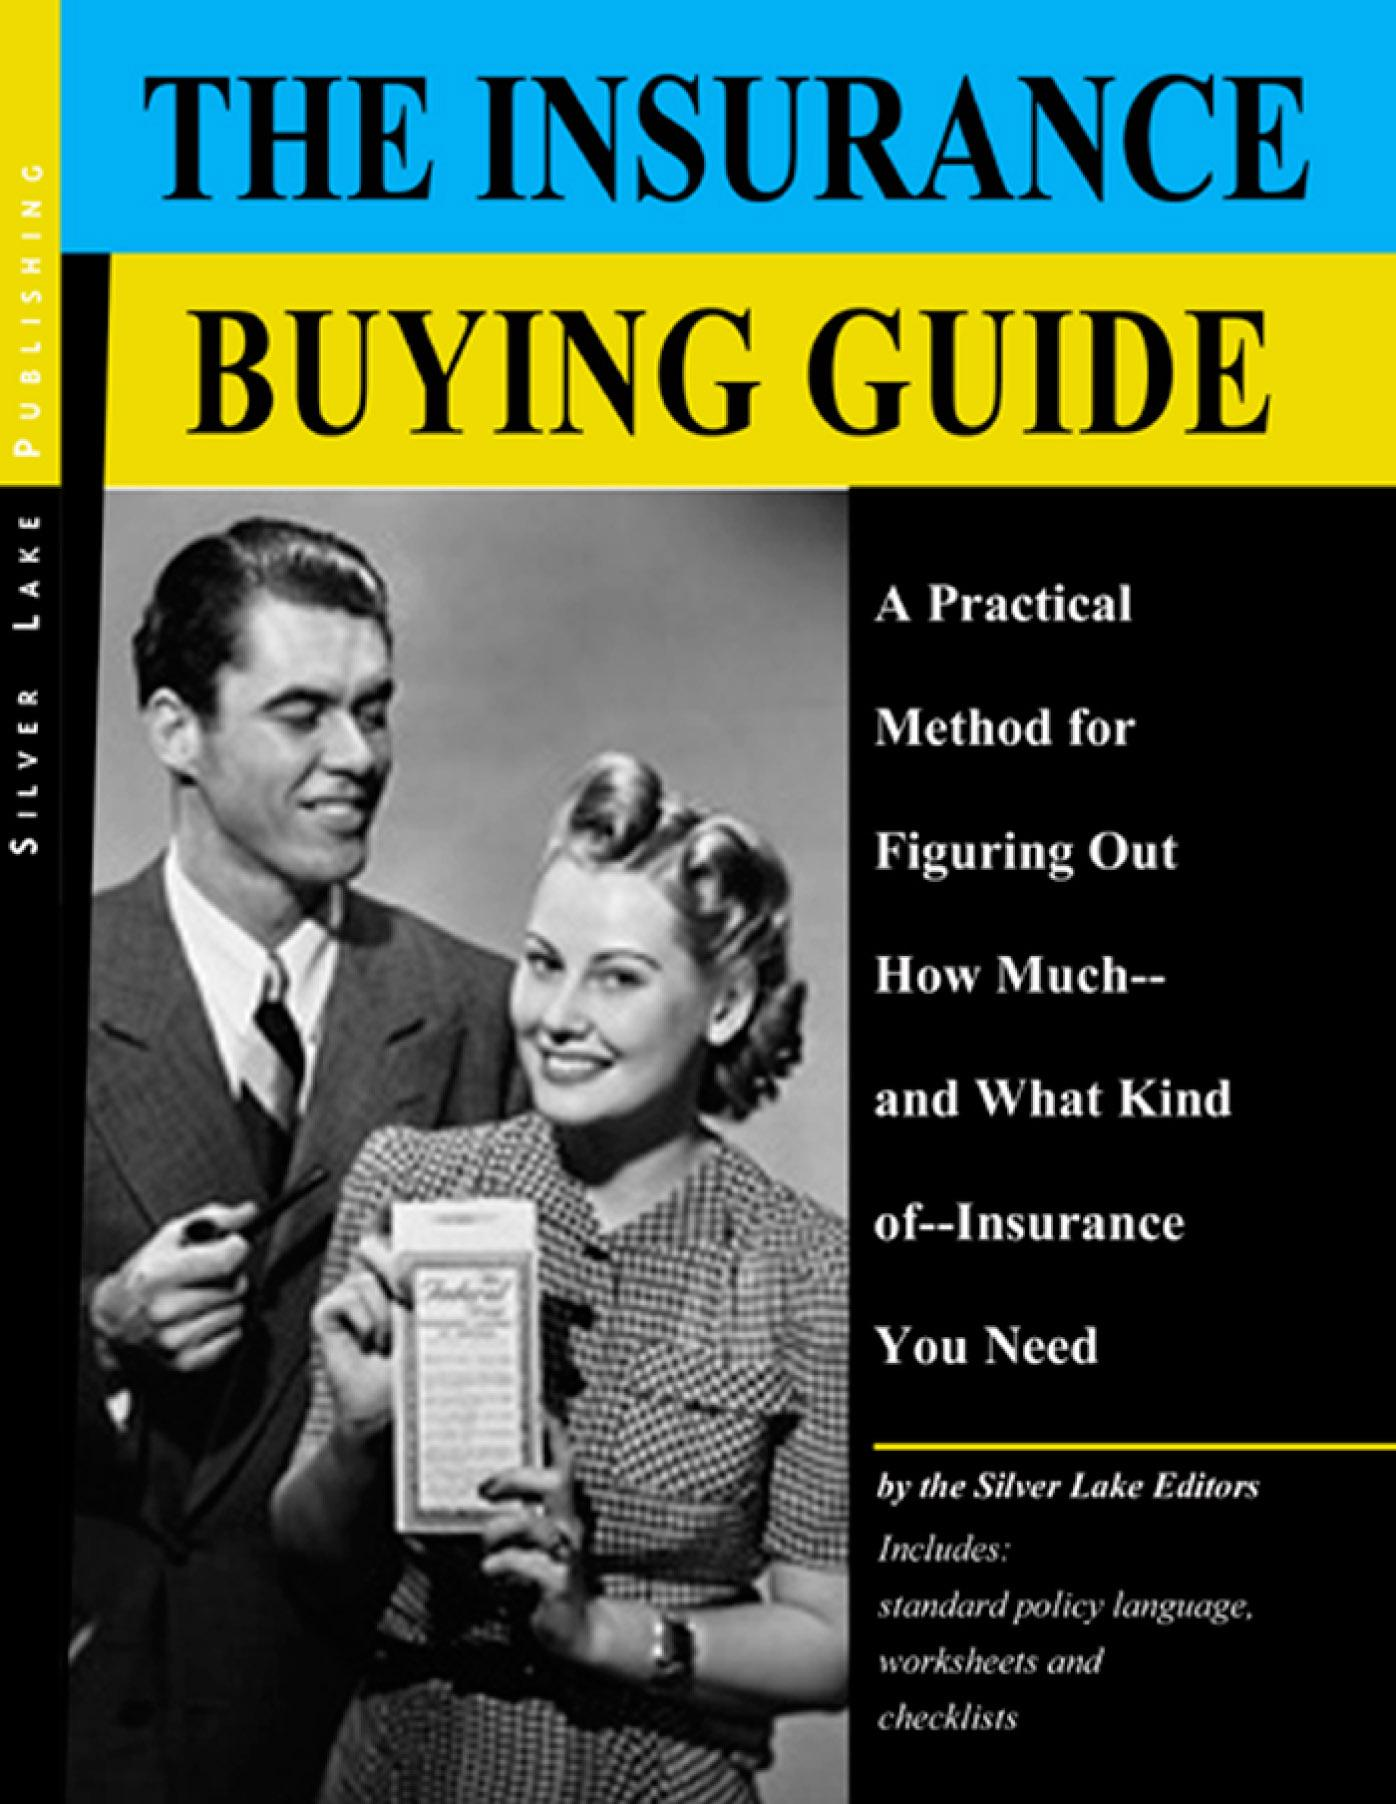 Insurance Buying Guide, The: A Practical Method for Figuring Out How Much--and What Kind of--Insurance You Need EB9781563438233